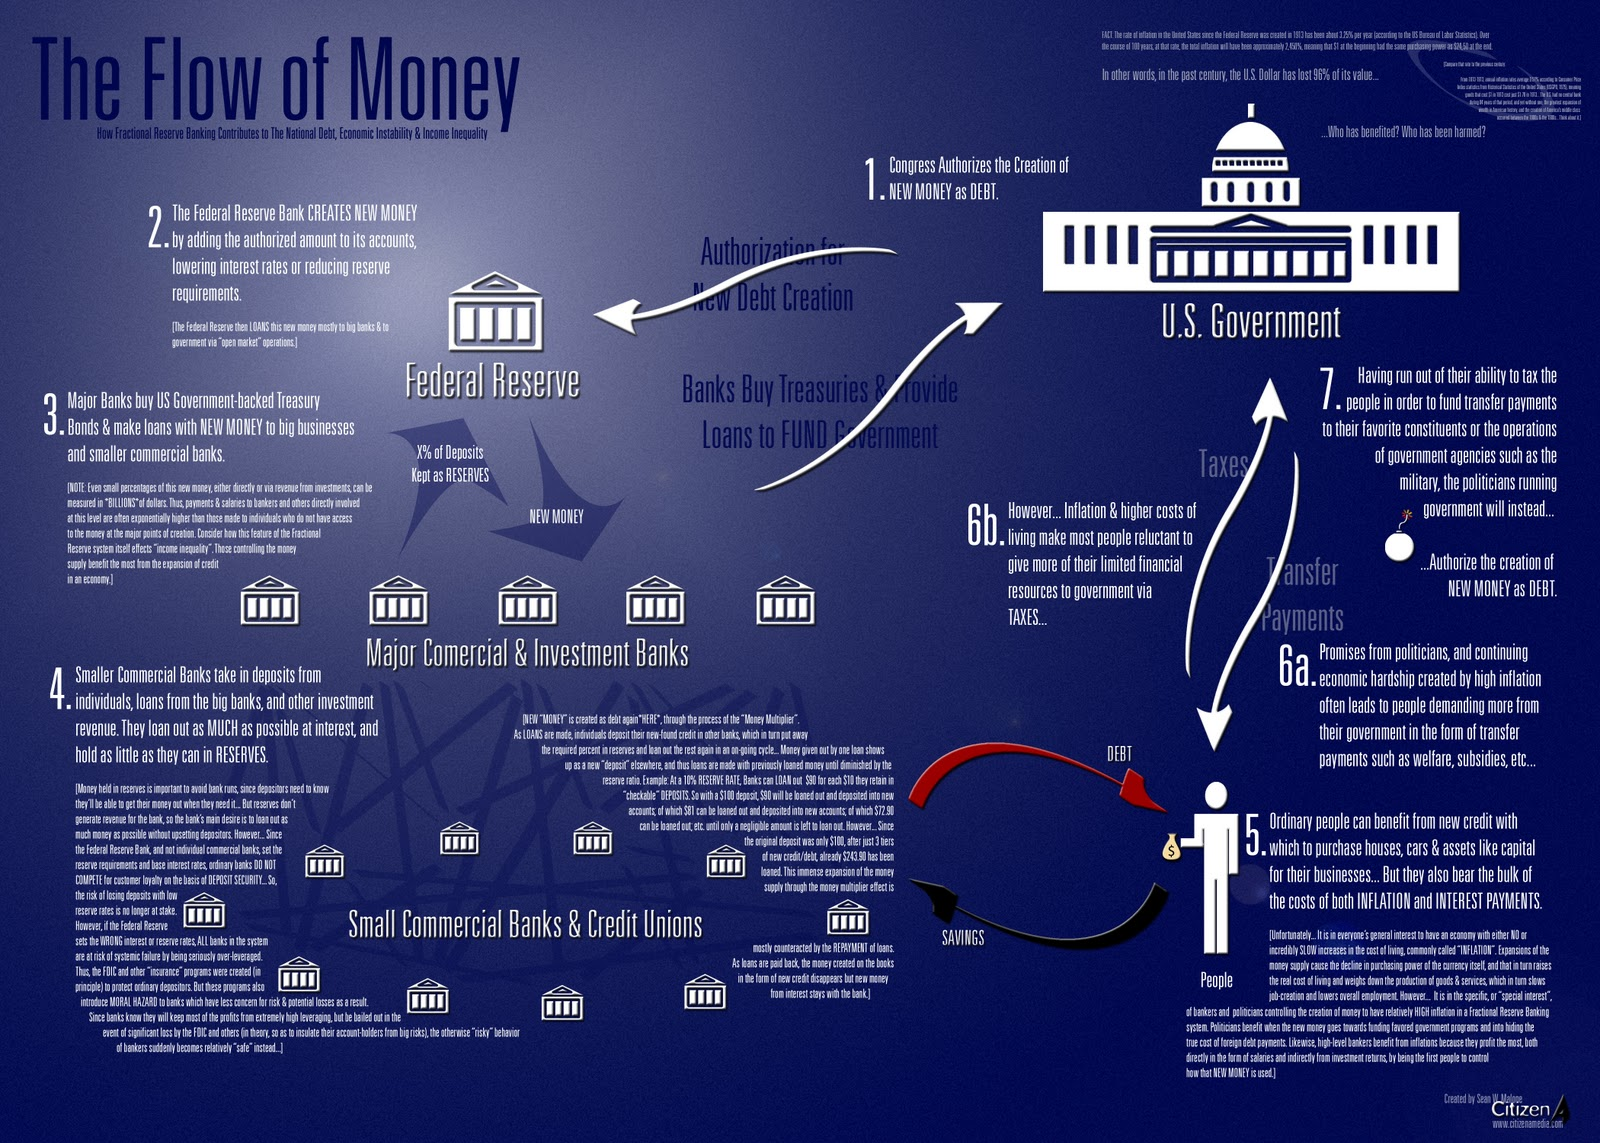 The Flow of Money Infographic